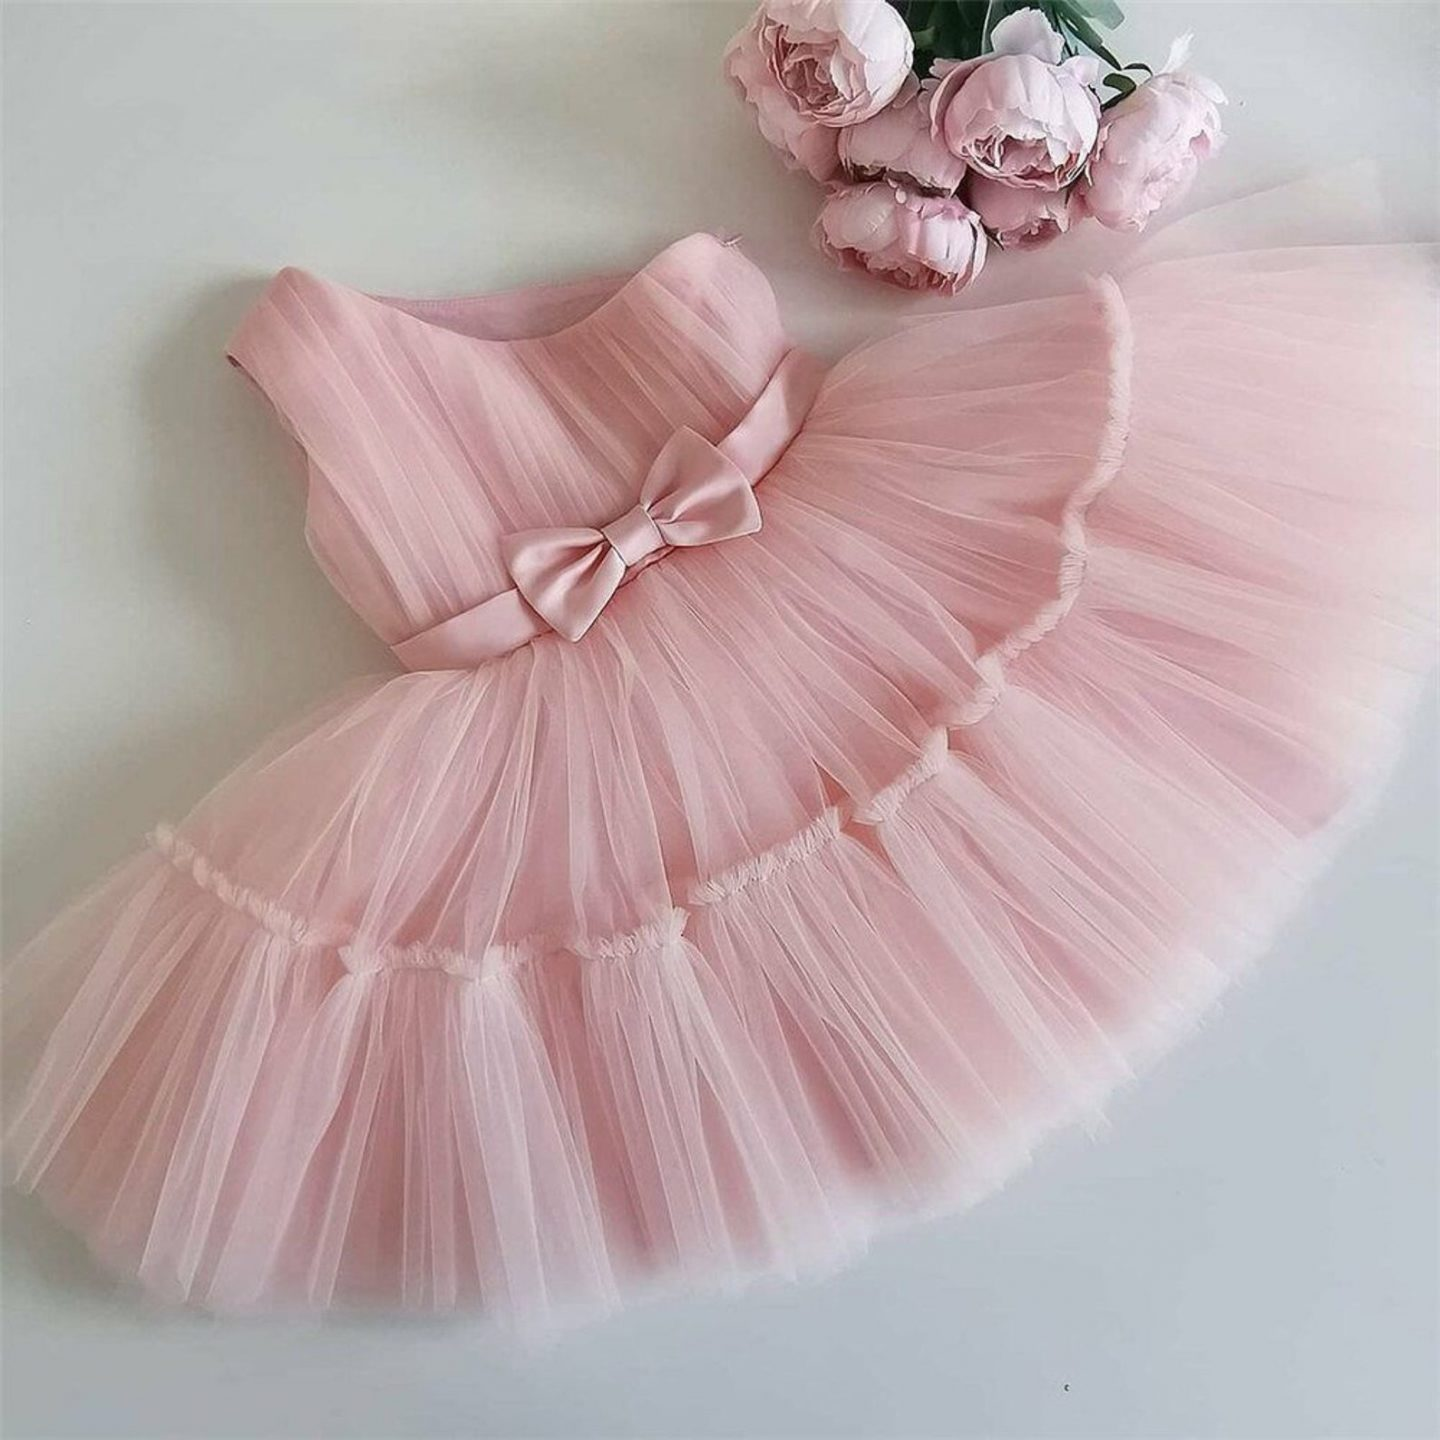 Pink tulle dress for first birthday of baby girl